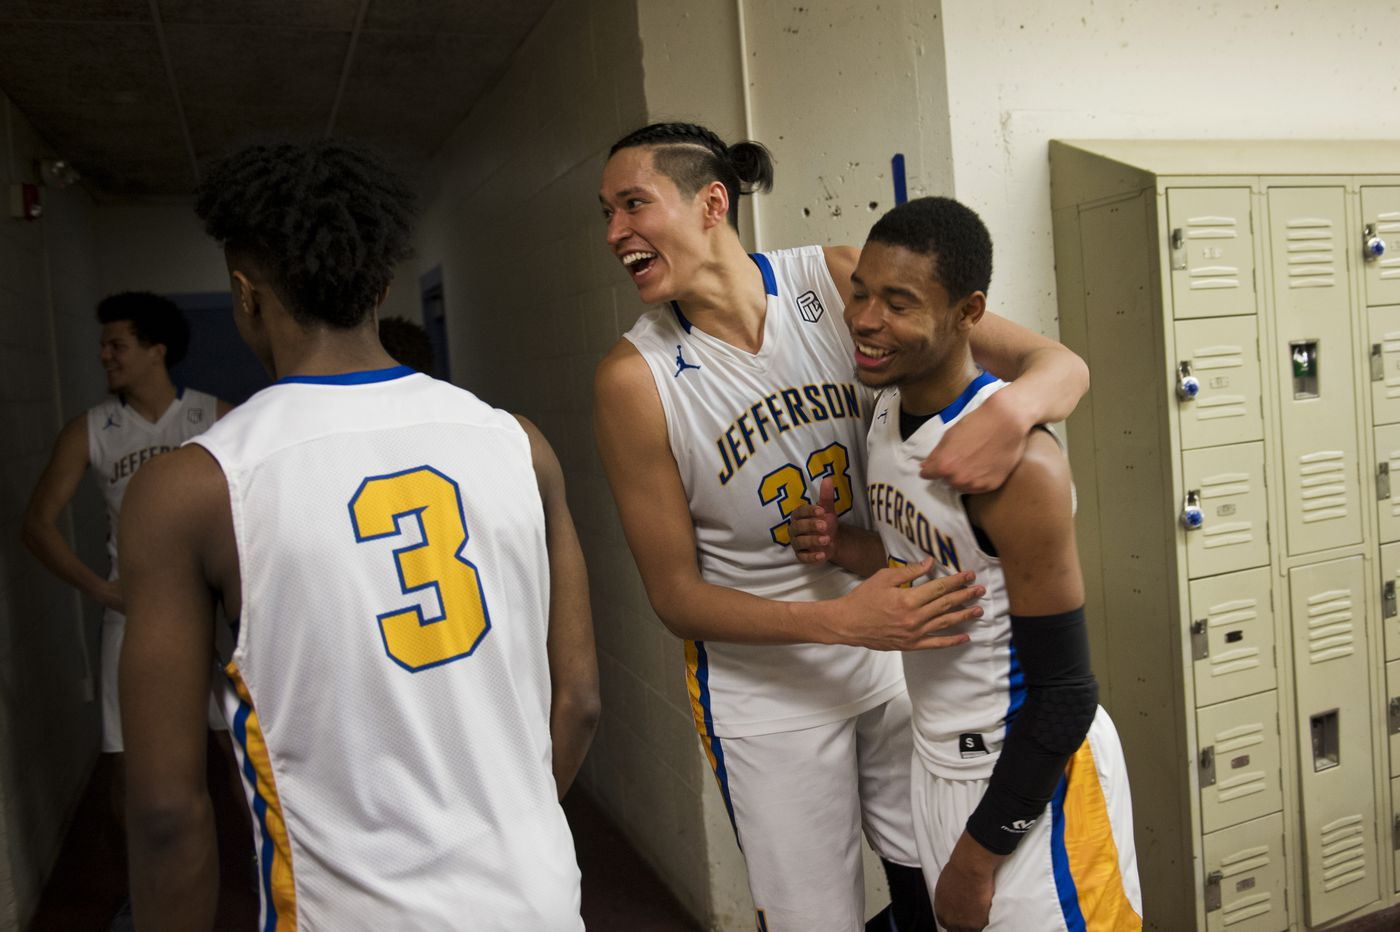 Kamaka Hepa, center, celebrates a win over a rival Portland team on Feb. 16, 2018. Teammate K'lum Strickland is at right and Jalen Brown is at left. (Marc Lester / ADN)